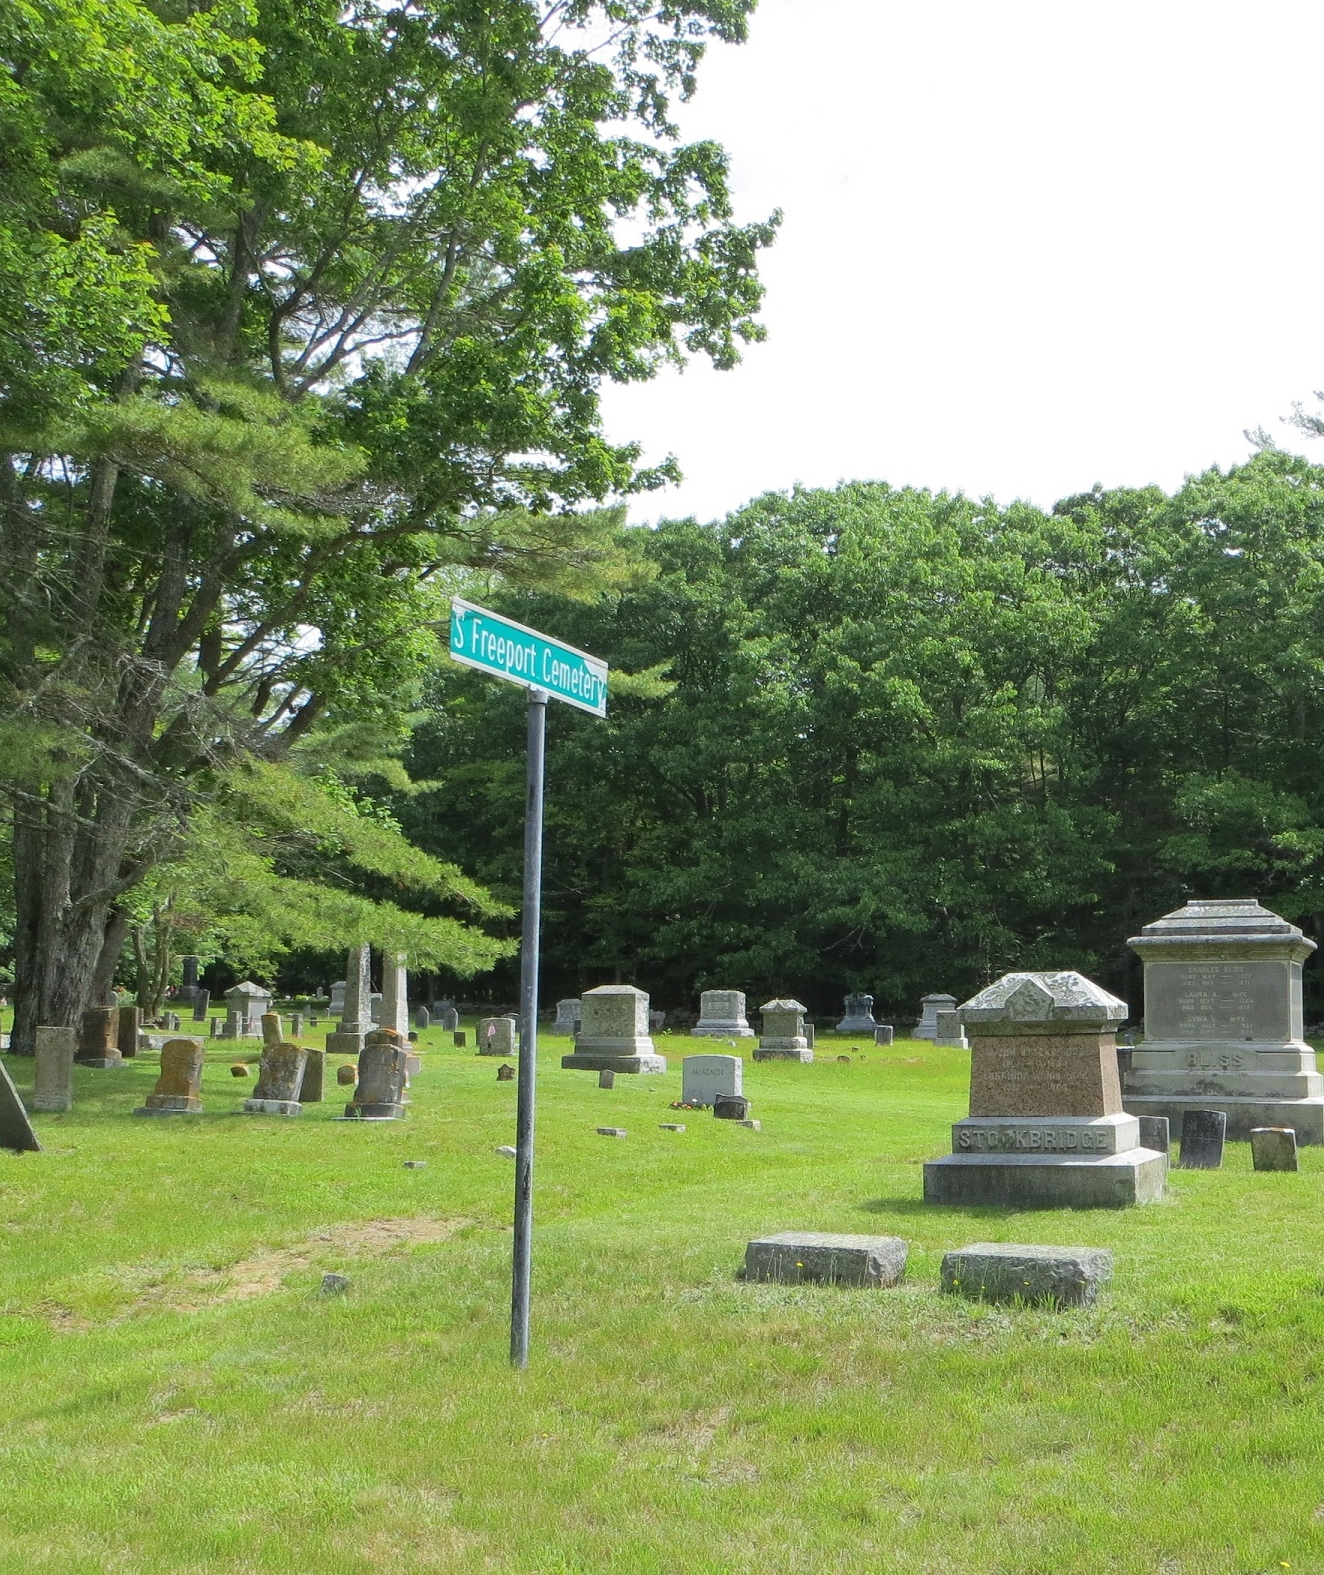 South Freeport Cemetery